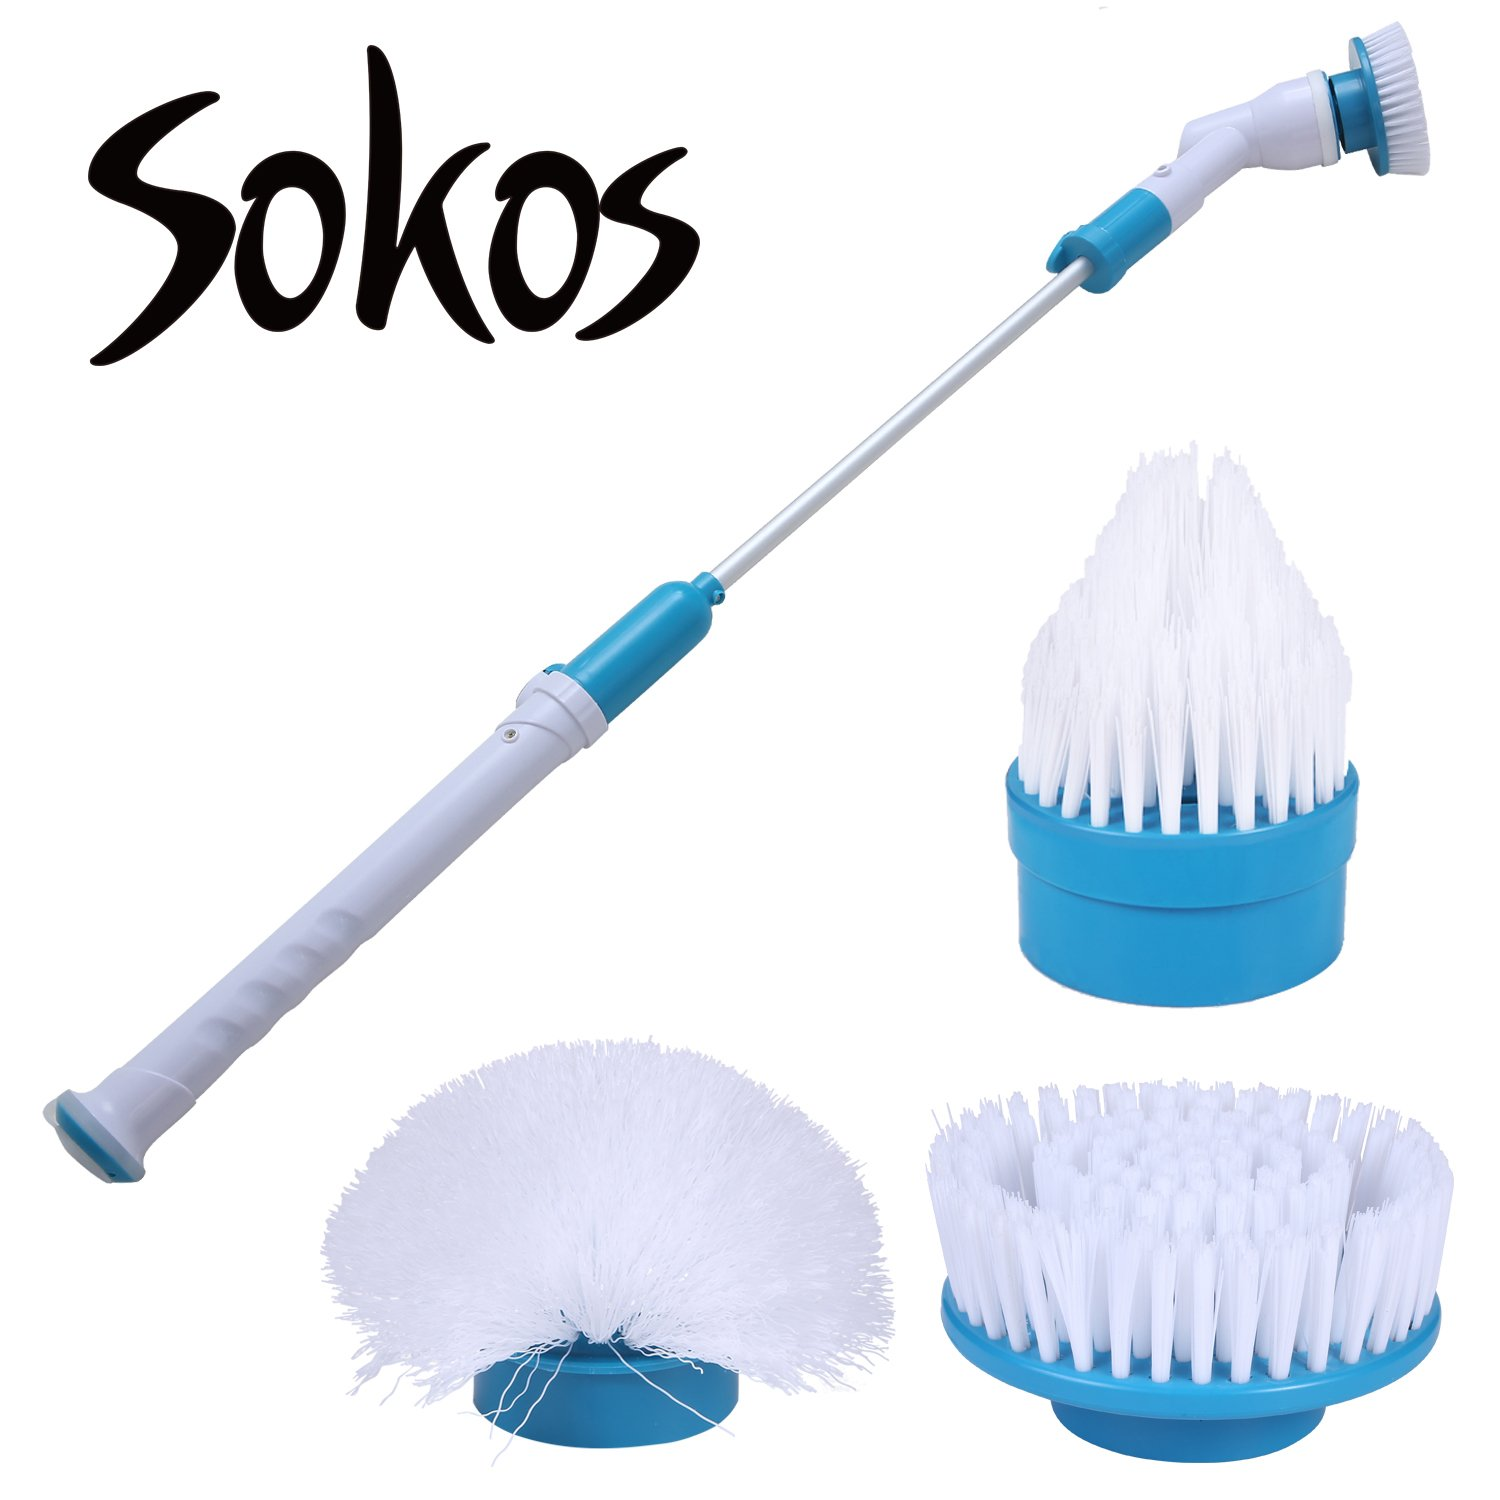 Spin Scrubber, Turbo Scrub Rechargeable Scrubber Cleaning Brush 360 Cordless Cleaning Tool for Bathroom, Floor, Wall